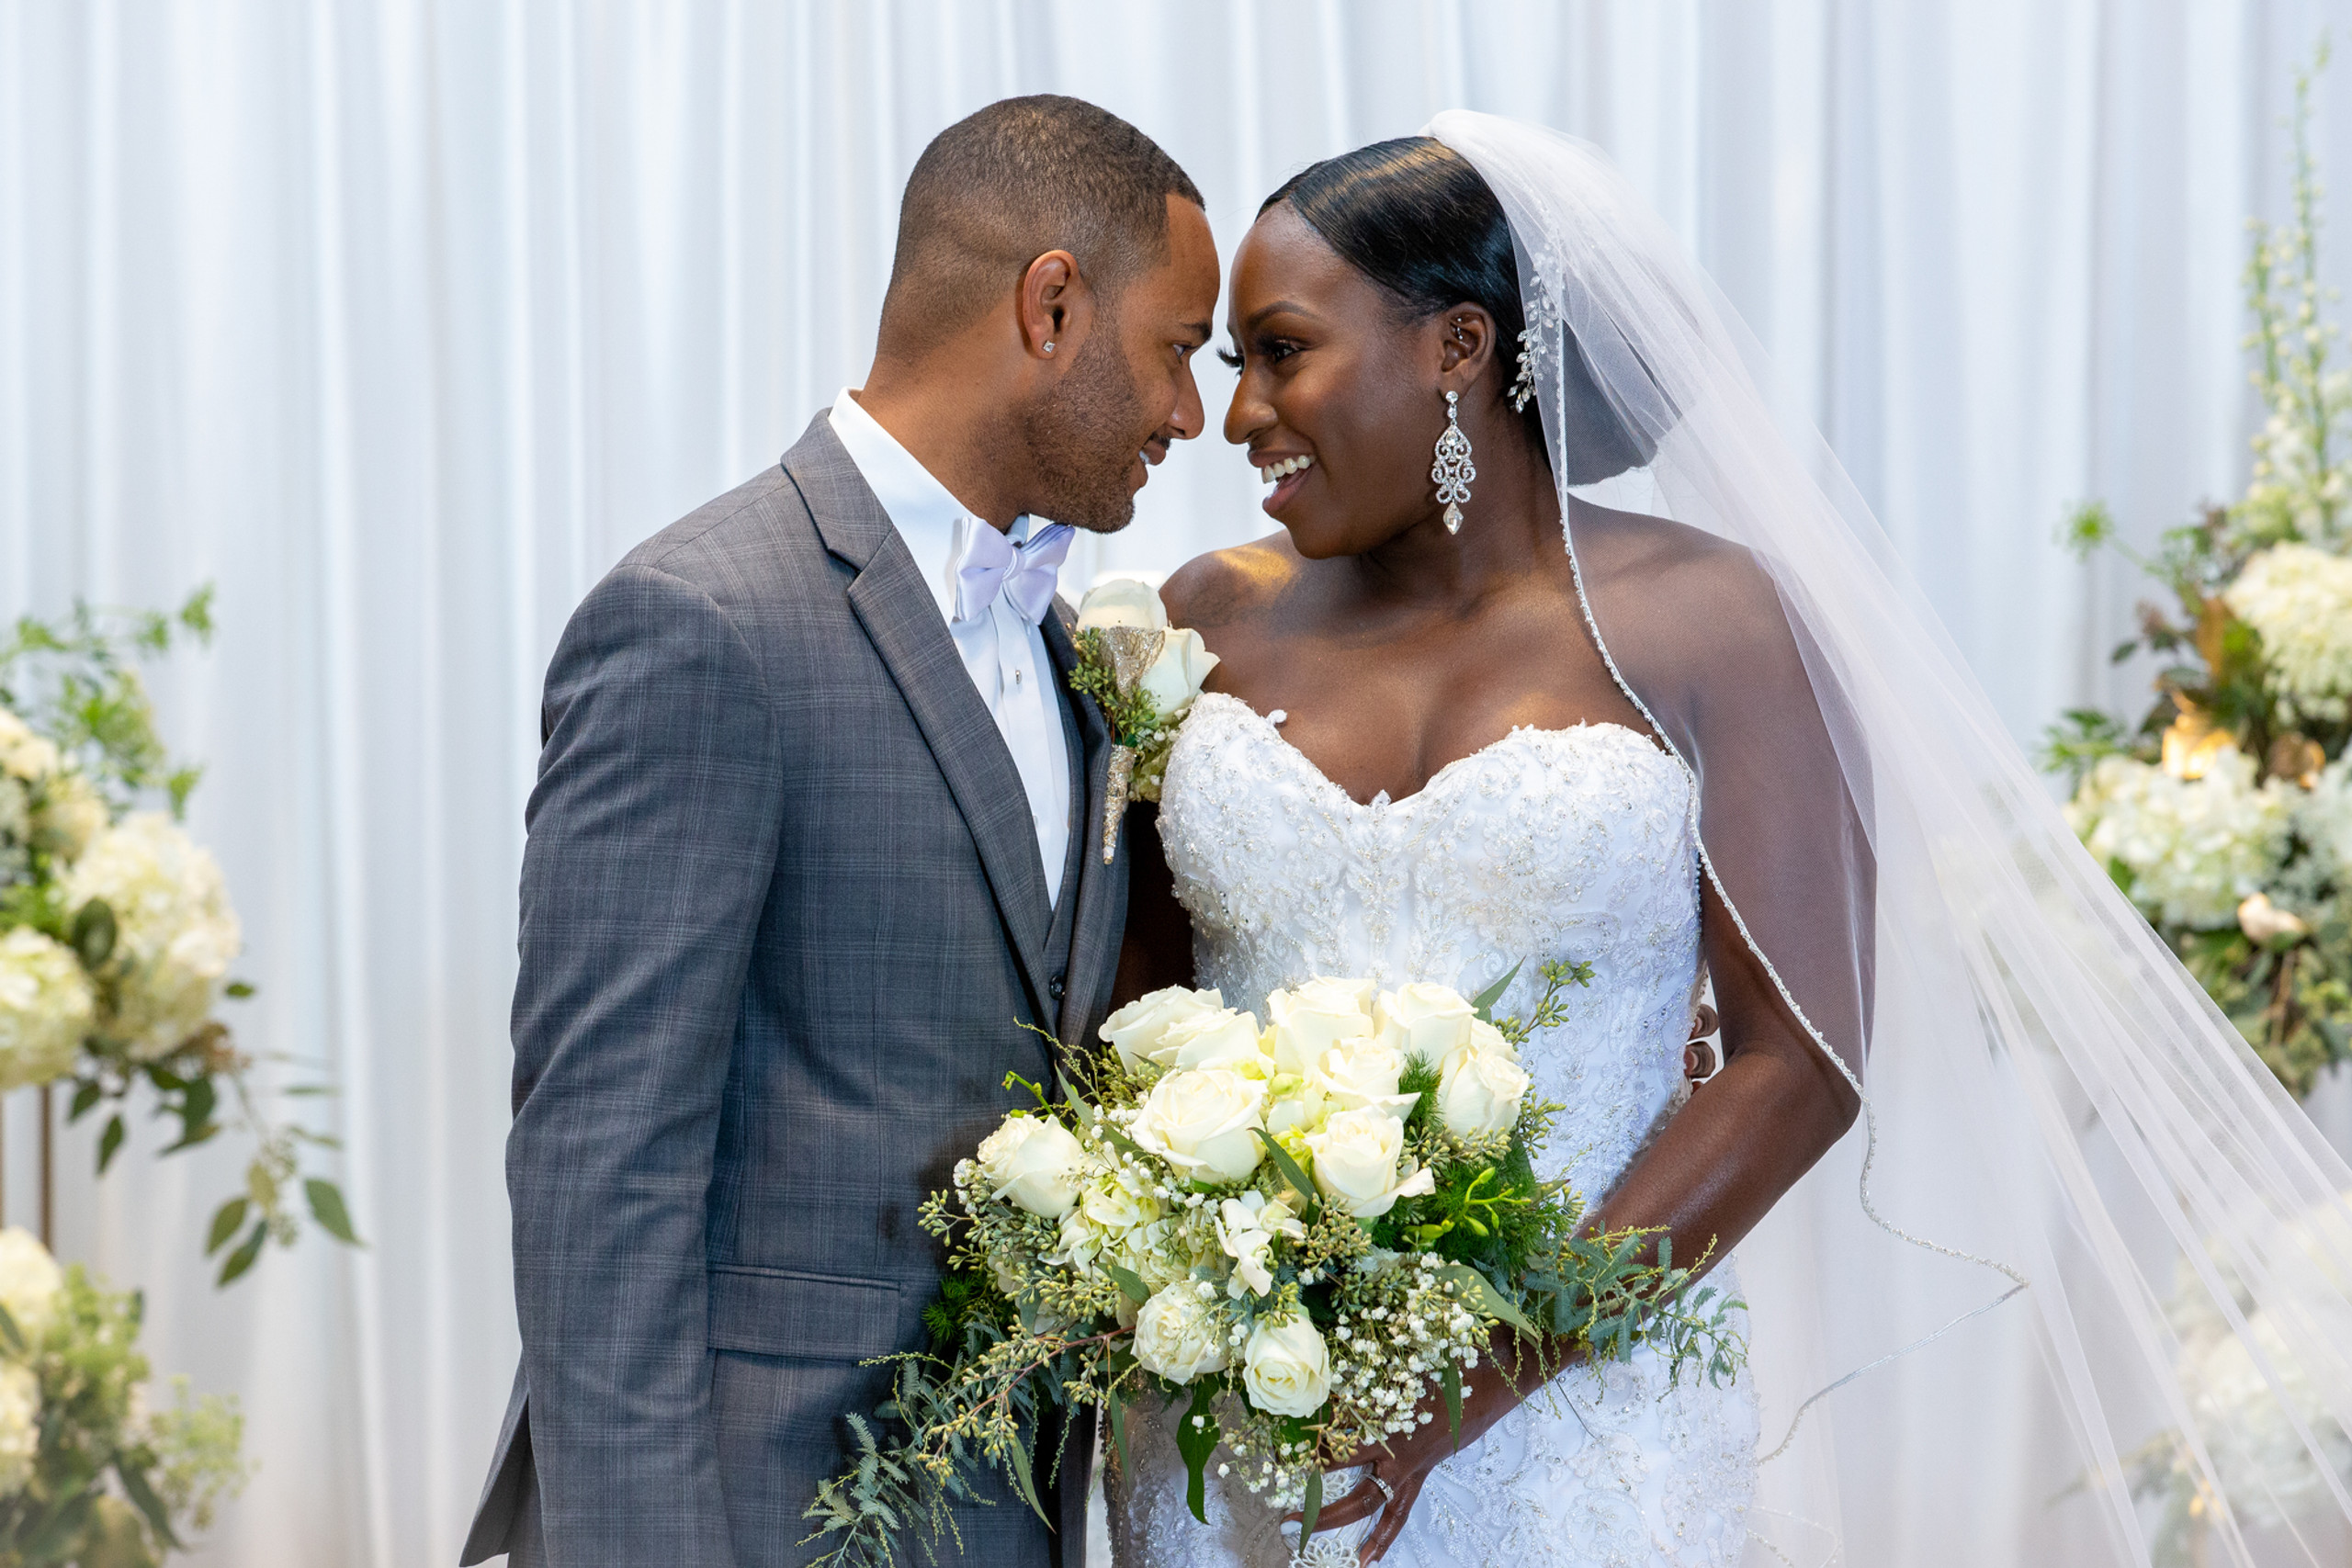 The bride and groom pose for a portrait after the wedding ceremony at the Hilton Main in Norfolk, Virginia.